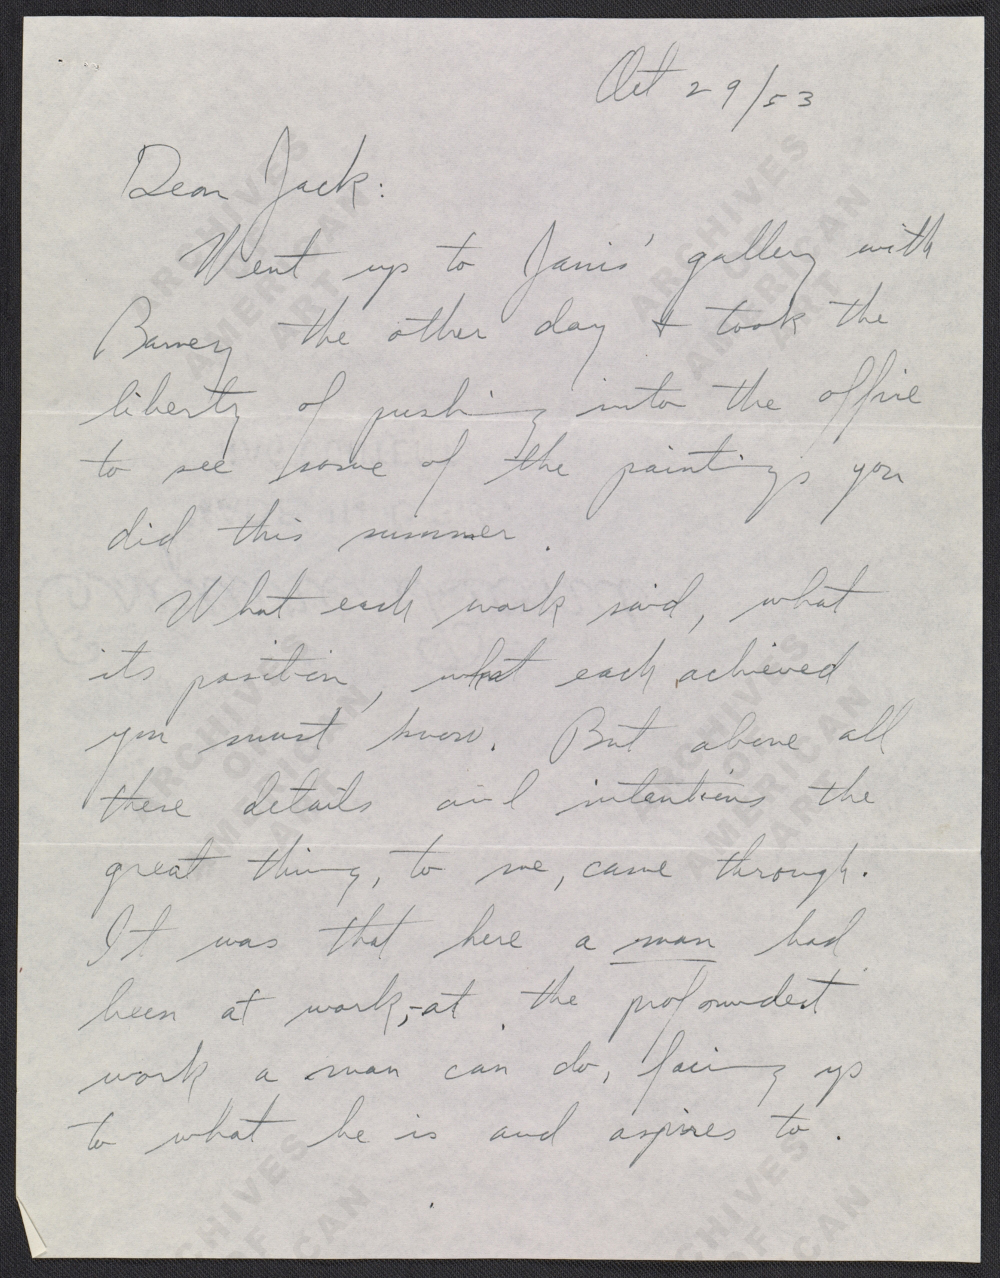 Clyfford Still letter to Jackson Pollock page 1